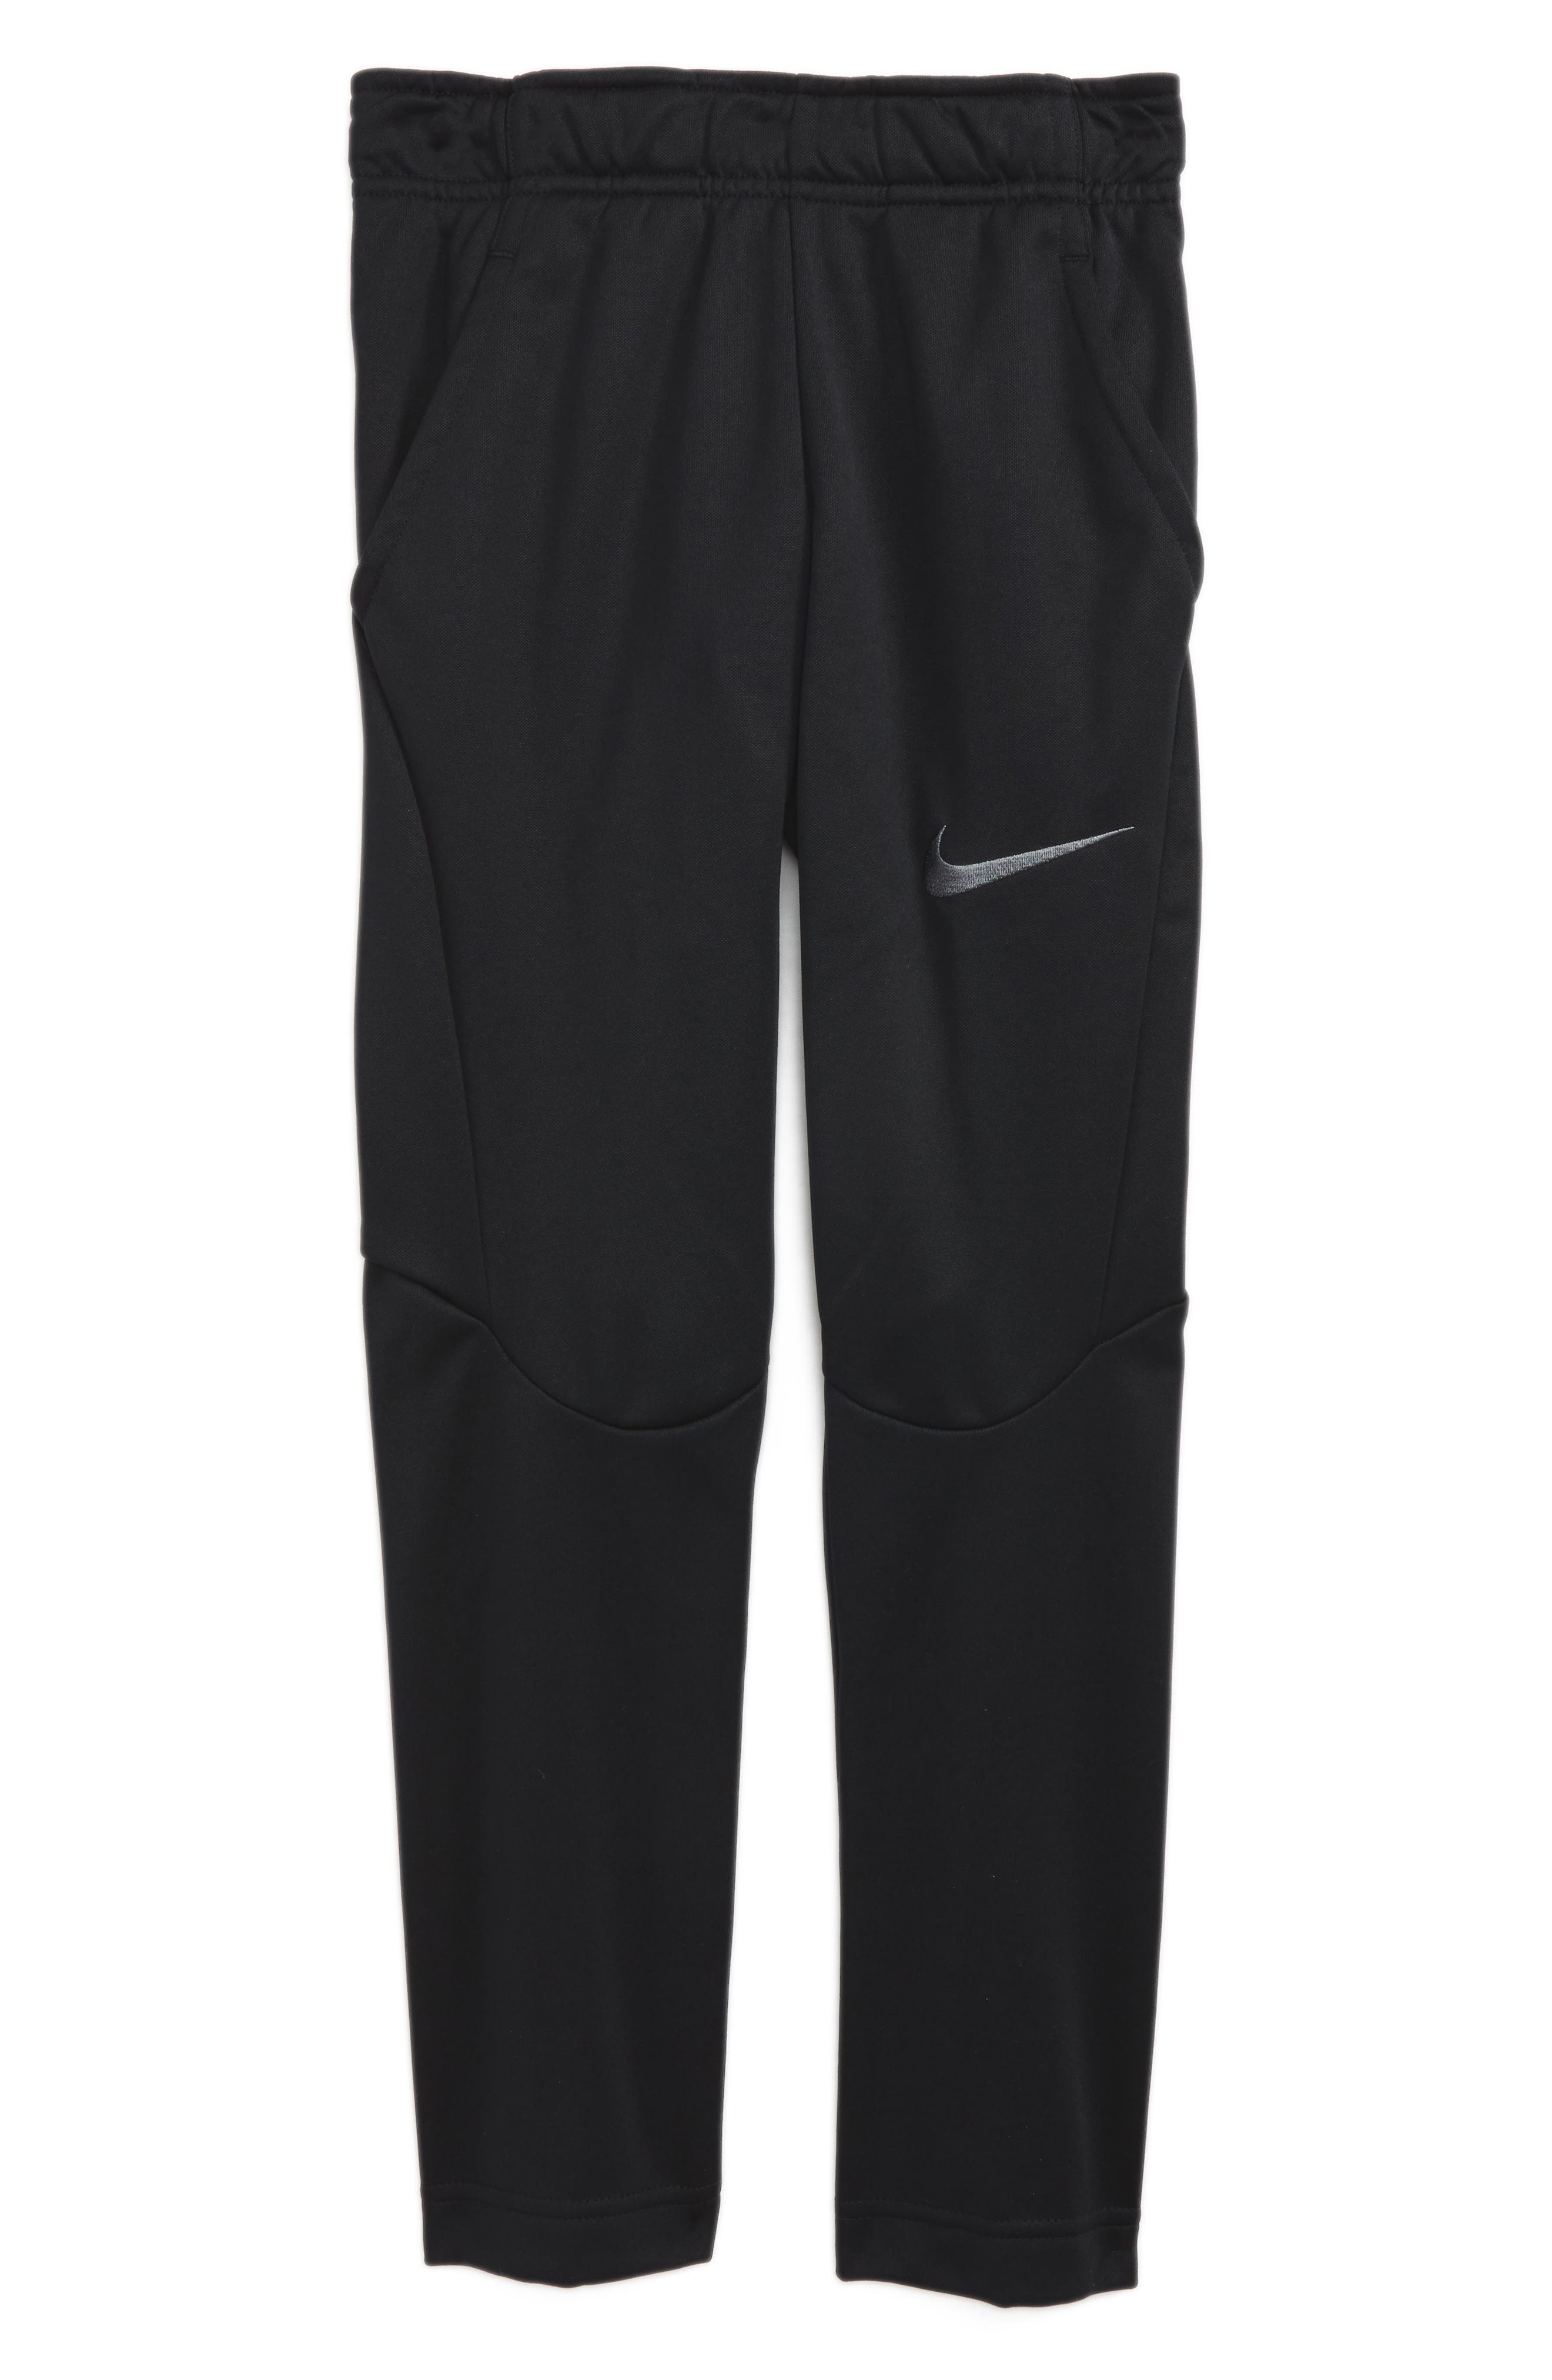 Therma-FIT Training Pants,                         Main,                         color, 010